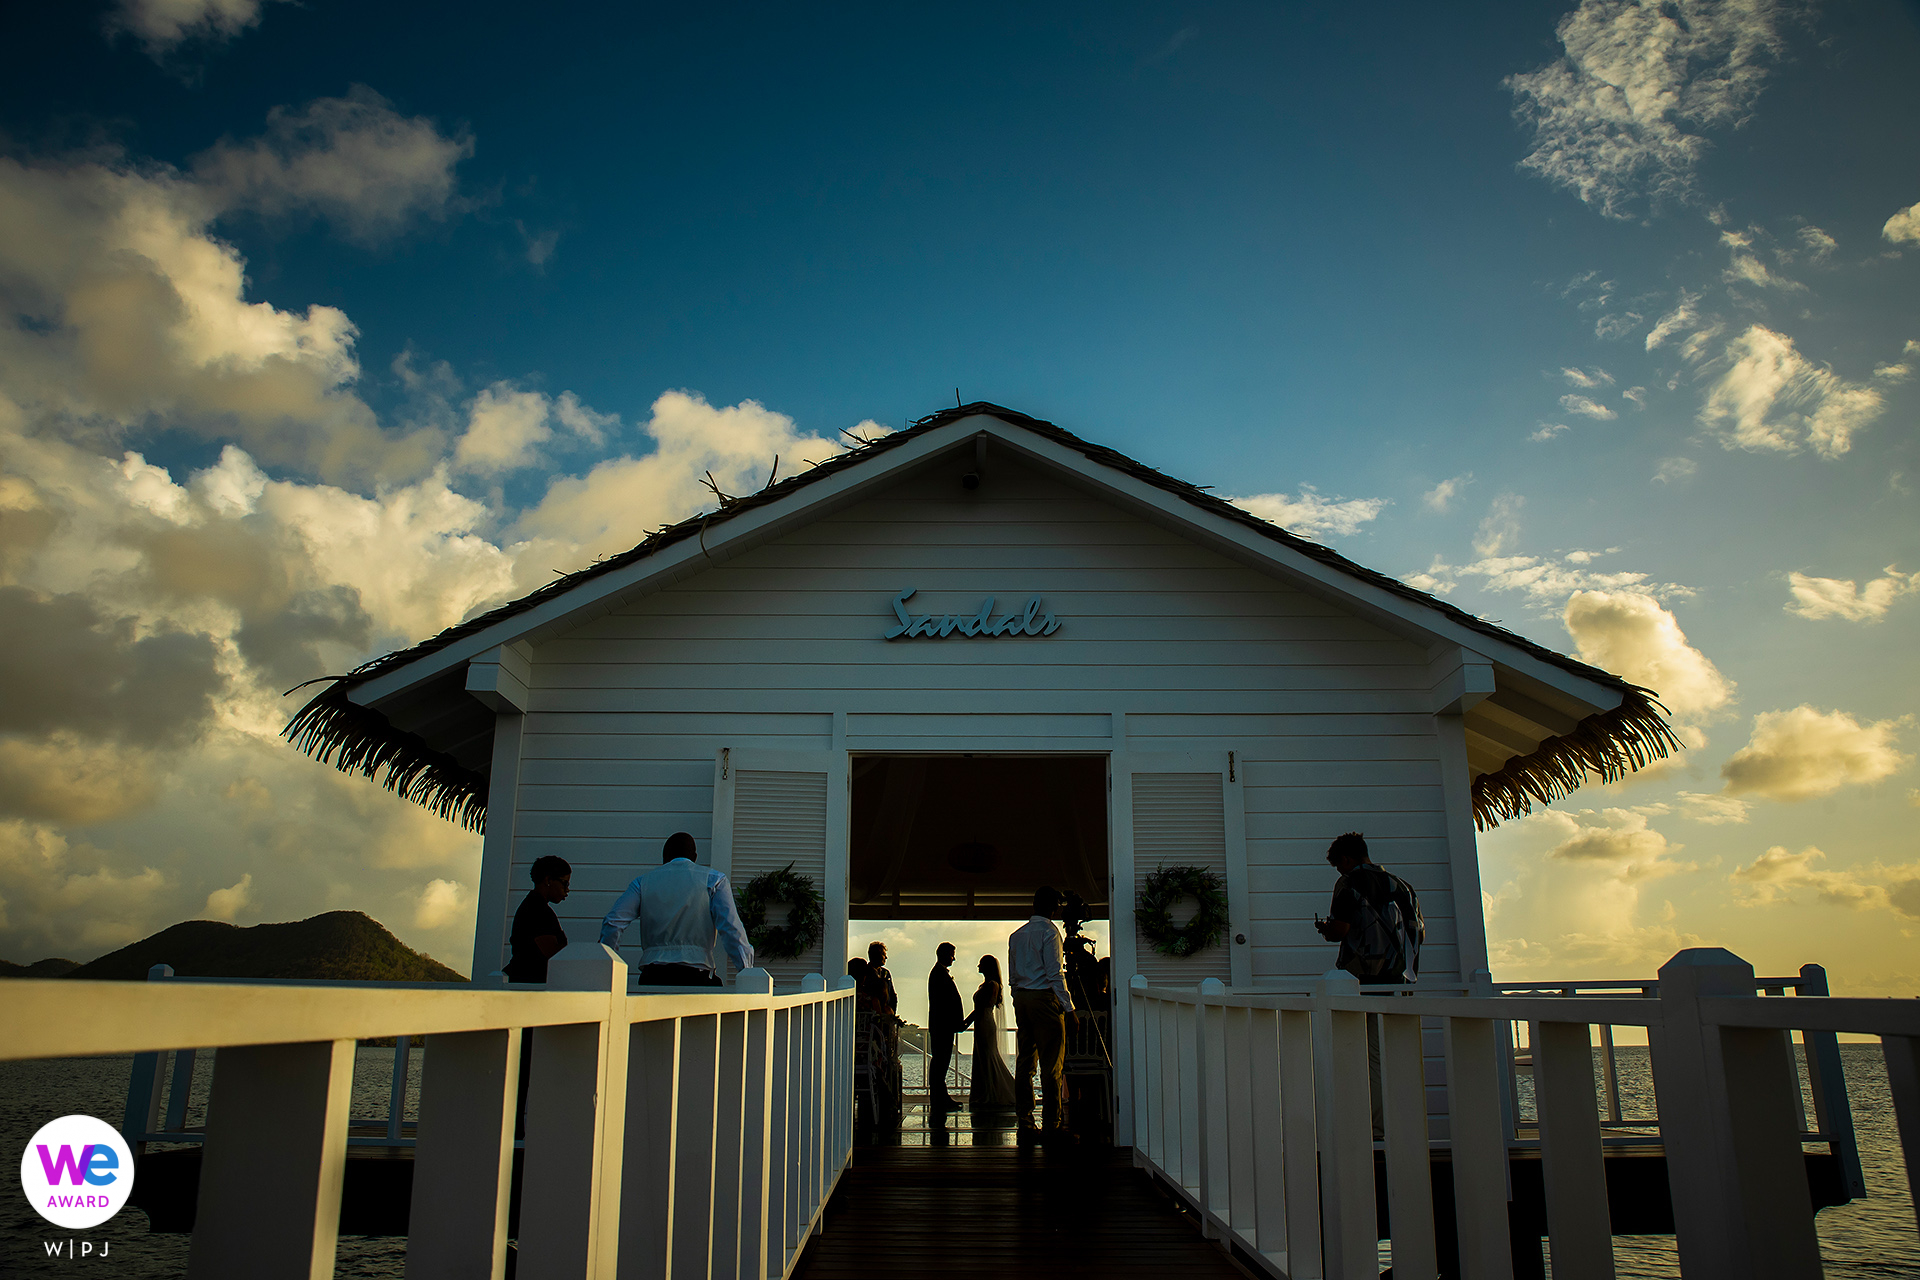 St. Lucia Elopement Ceremony Photography | The bride and groom tie the knot in a small, overwater bungalow